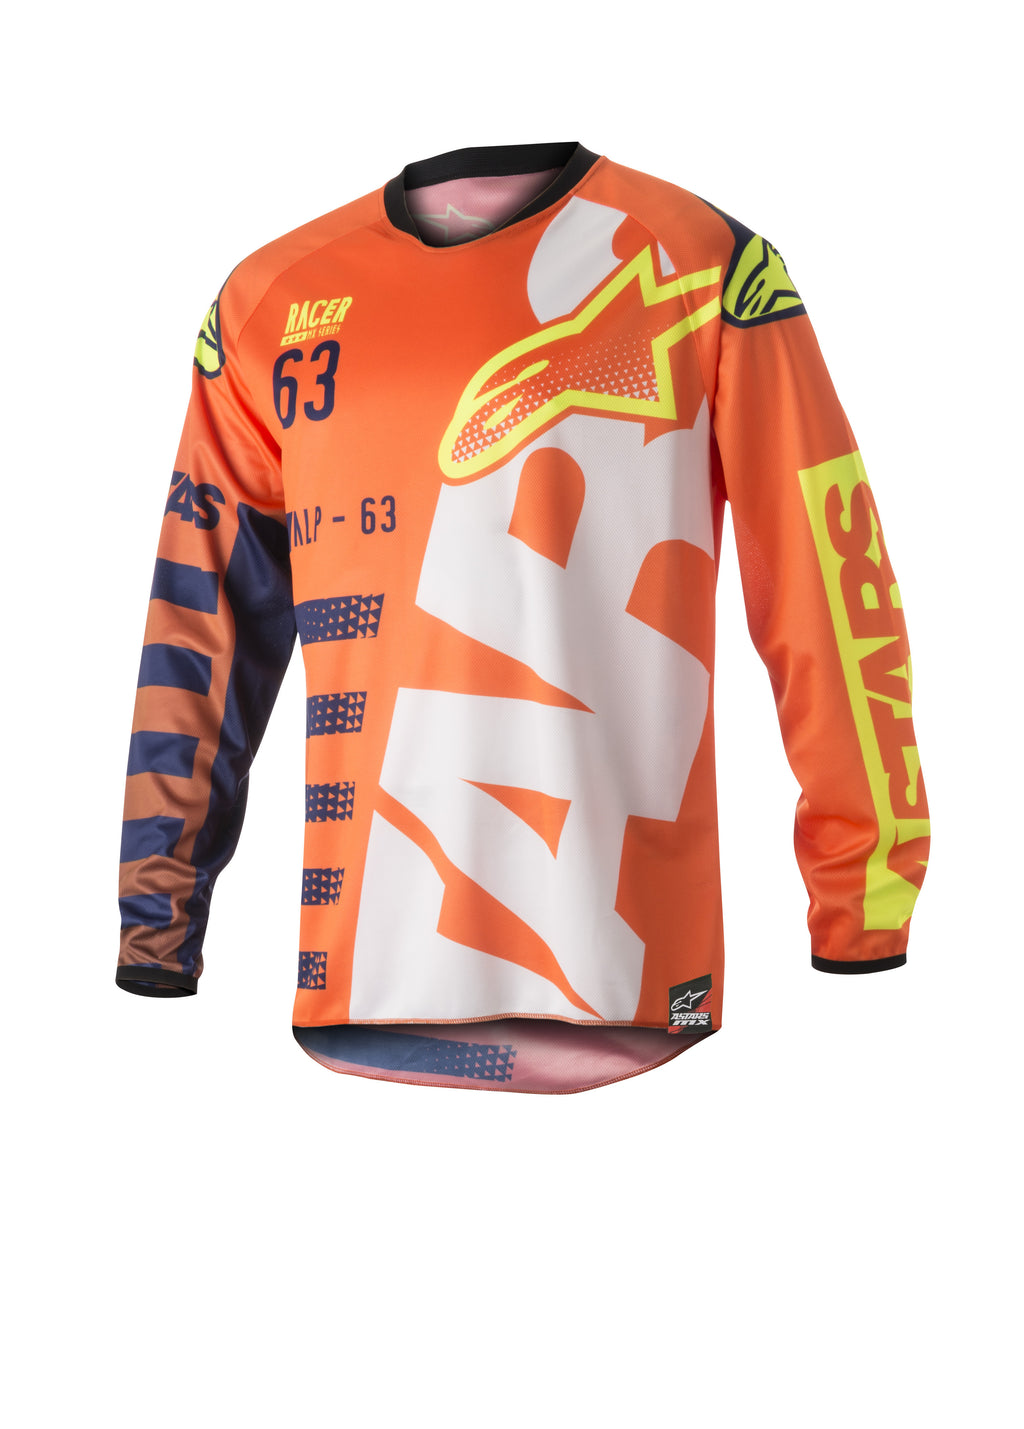 Kit Combo Alpinestars Racer Braap - 2018- Orange Blue White 30in S-Small